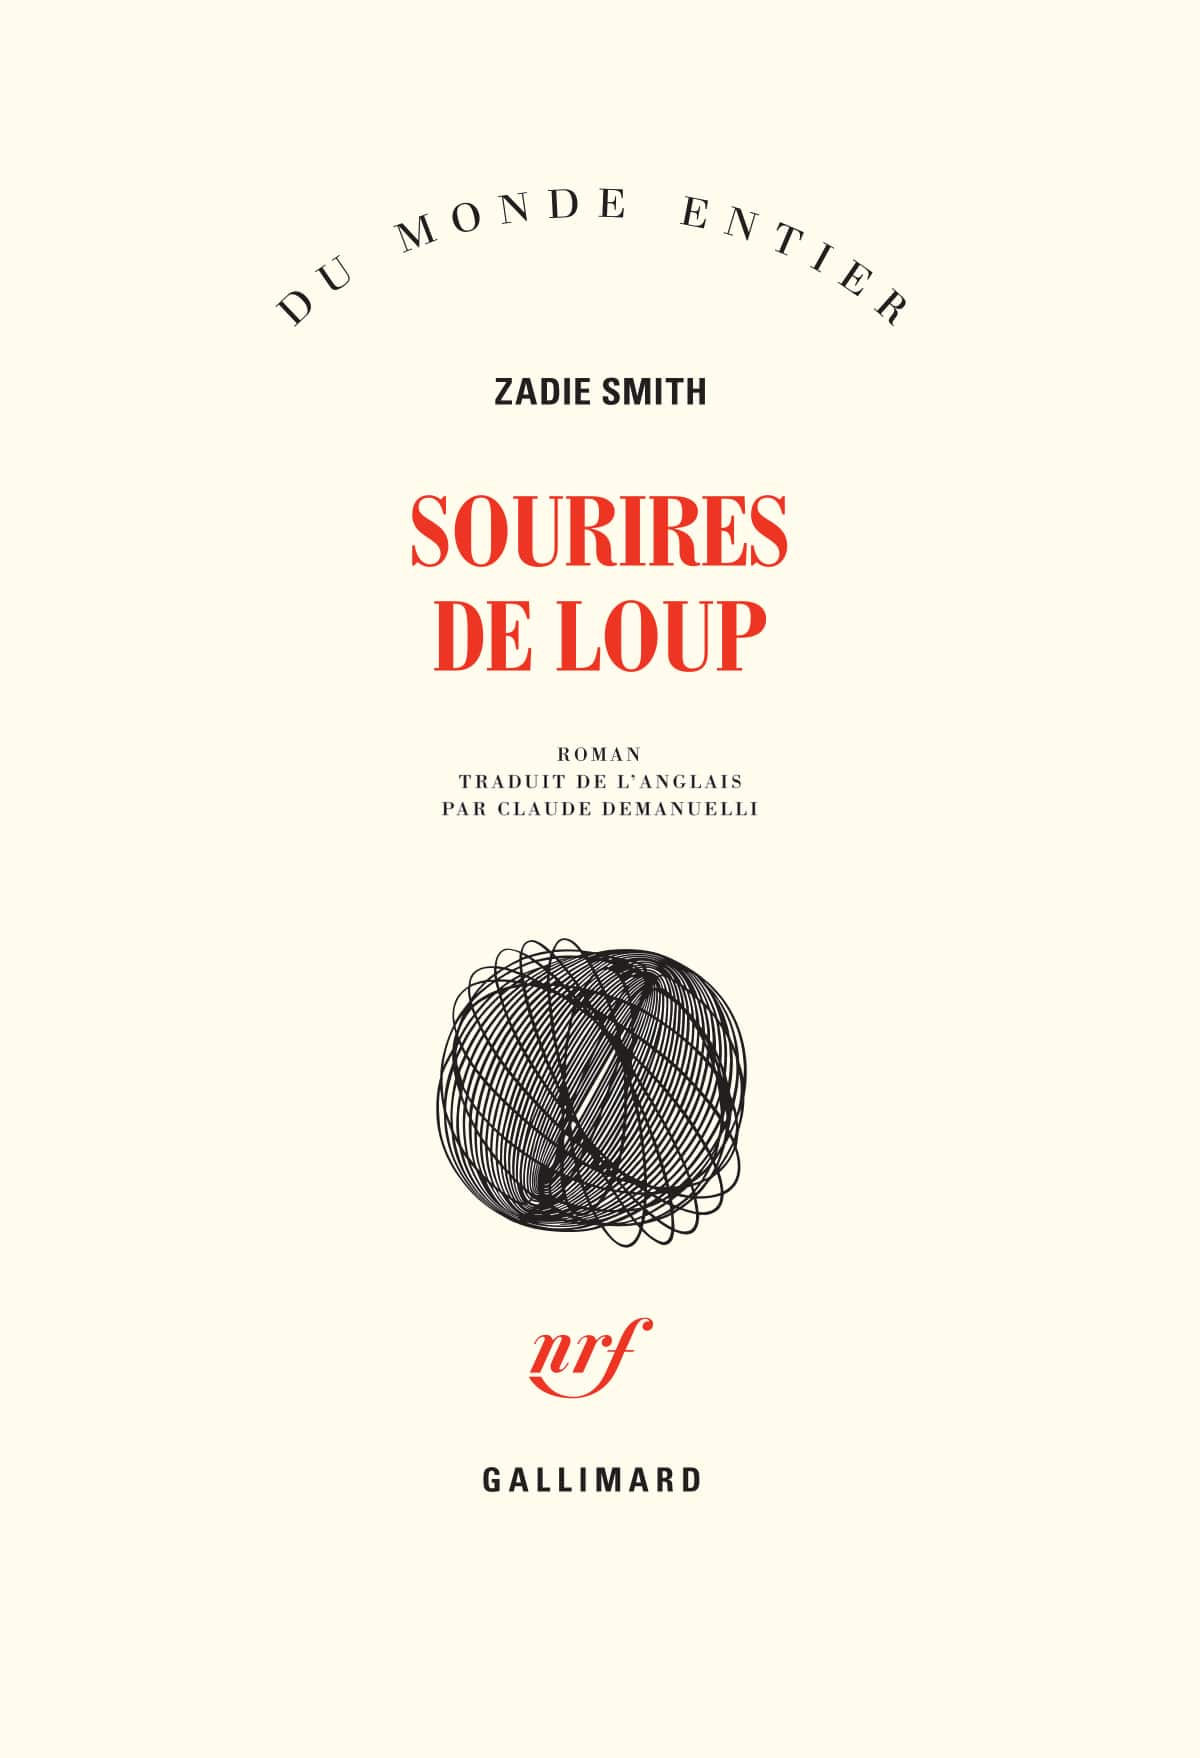 Sourires de loup de Zadie Smith, un regard incisif sur l'immigration